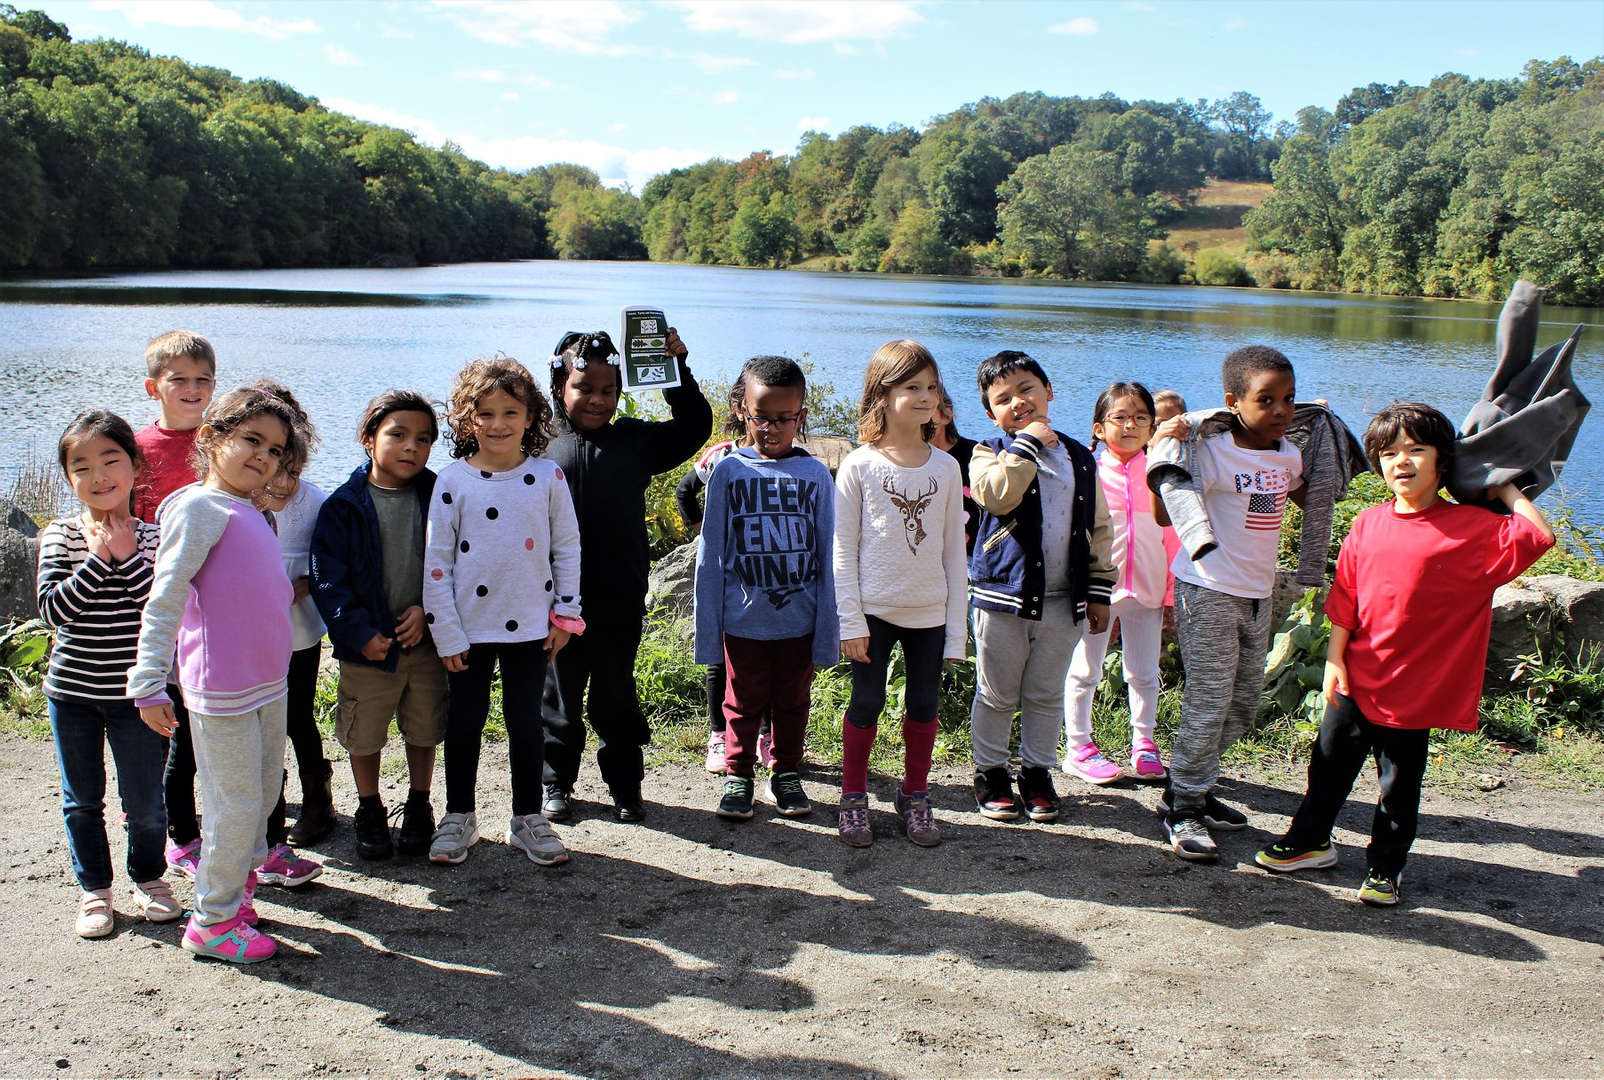 Students pose for a photo during their walk around Swan Lake.